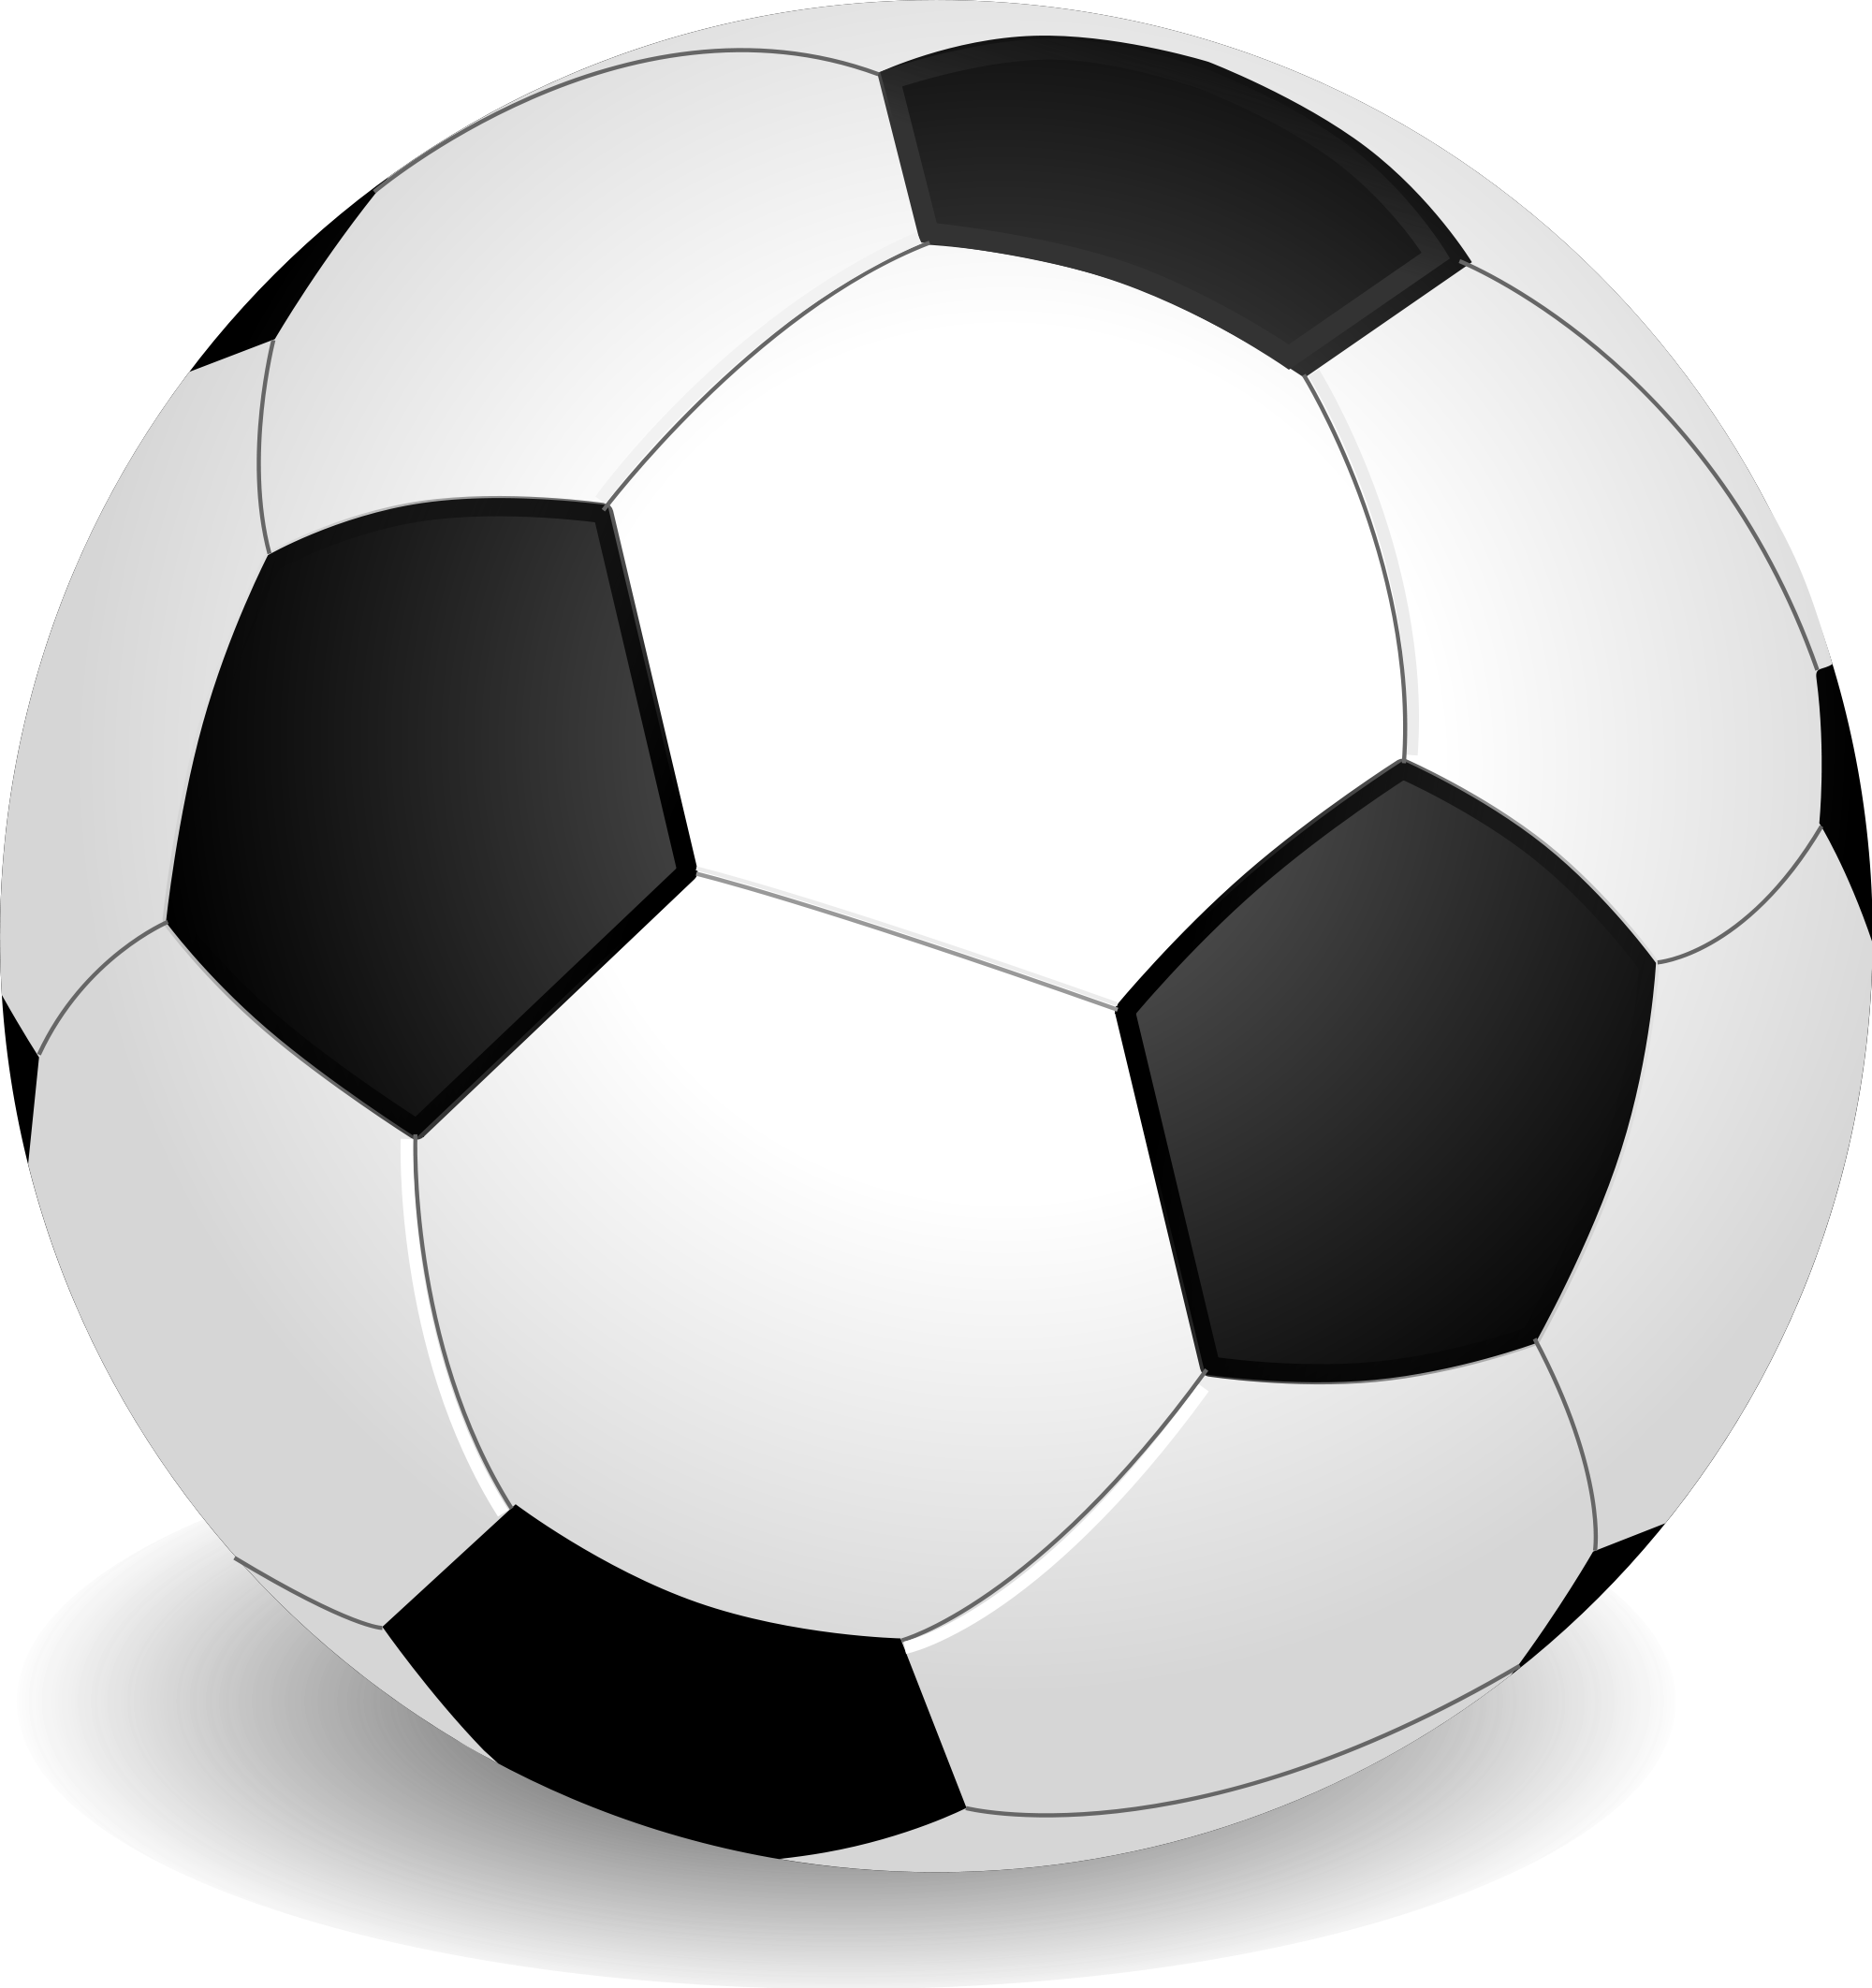 Football clipart black and white svg png royalty free File:Football (soccer ball).svg - Wikimedia Commons png royalty free